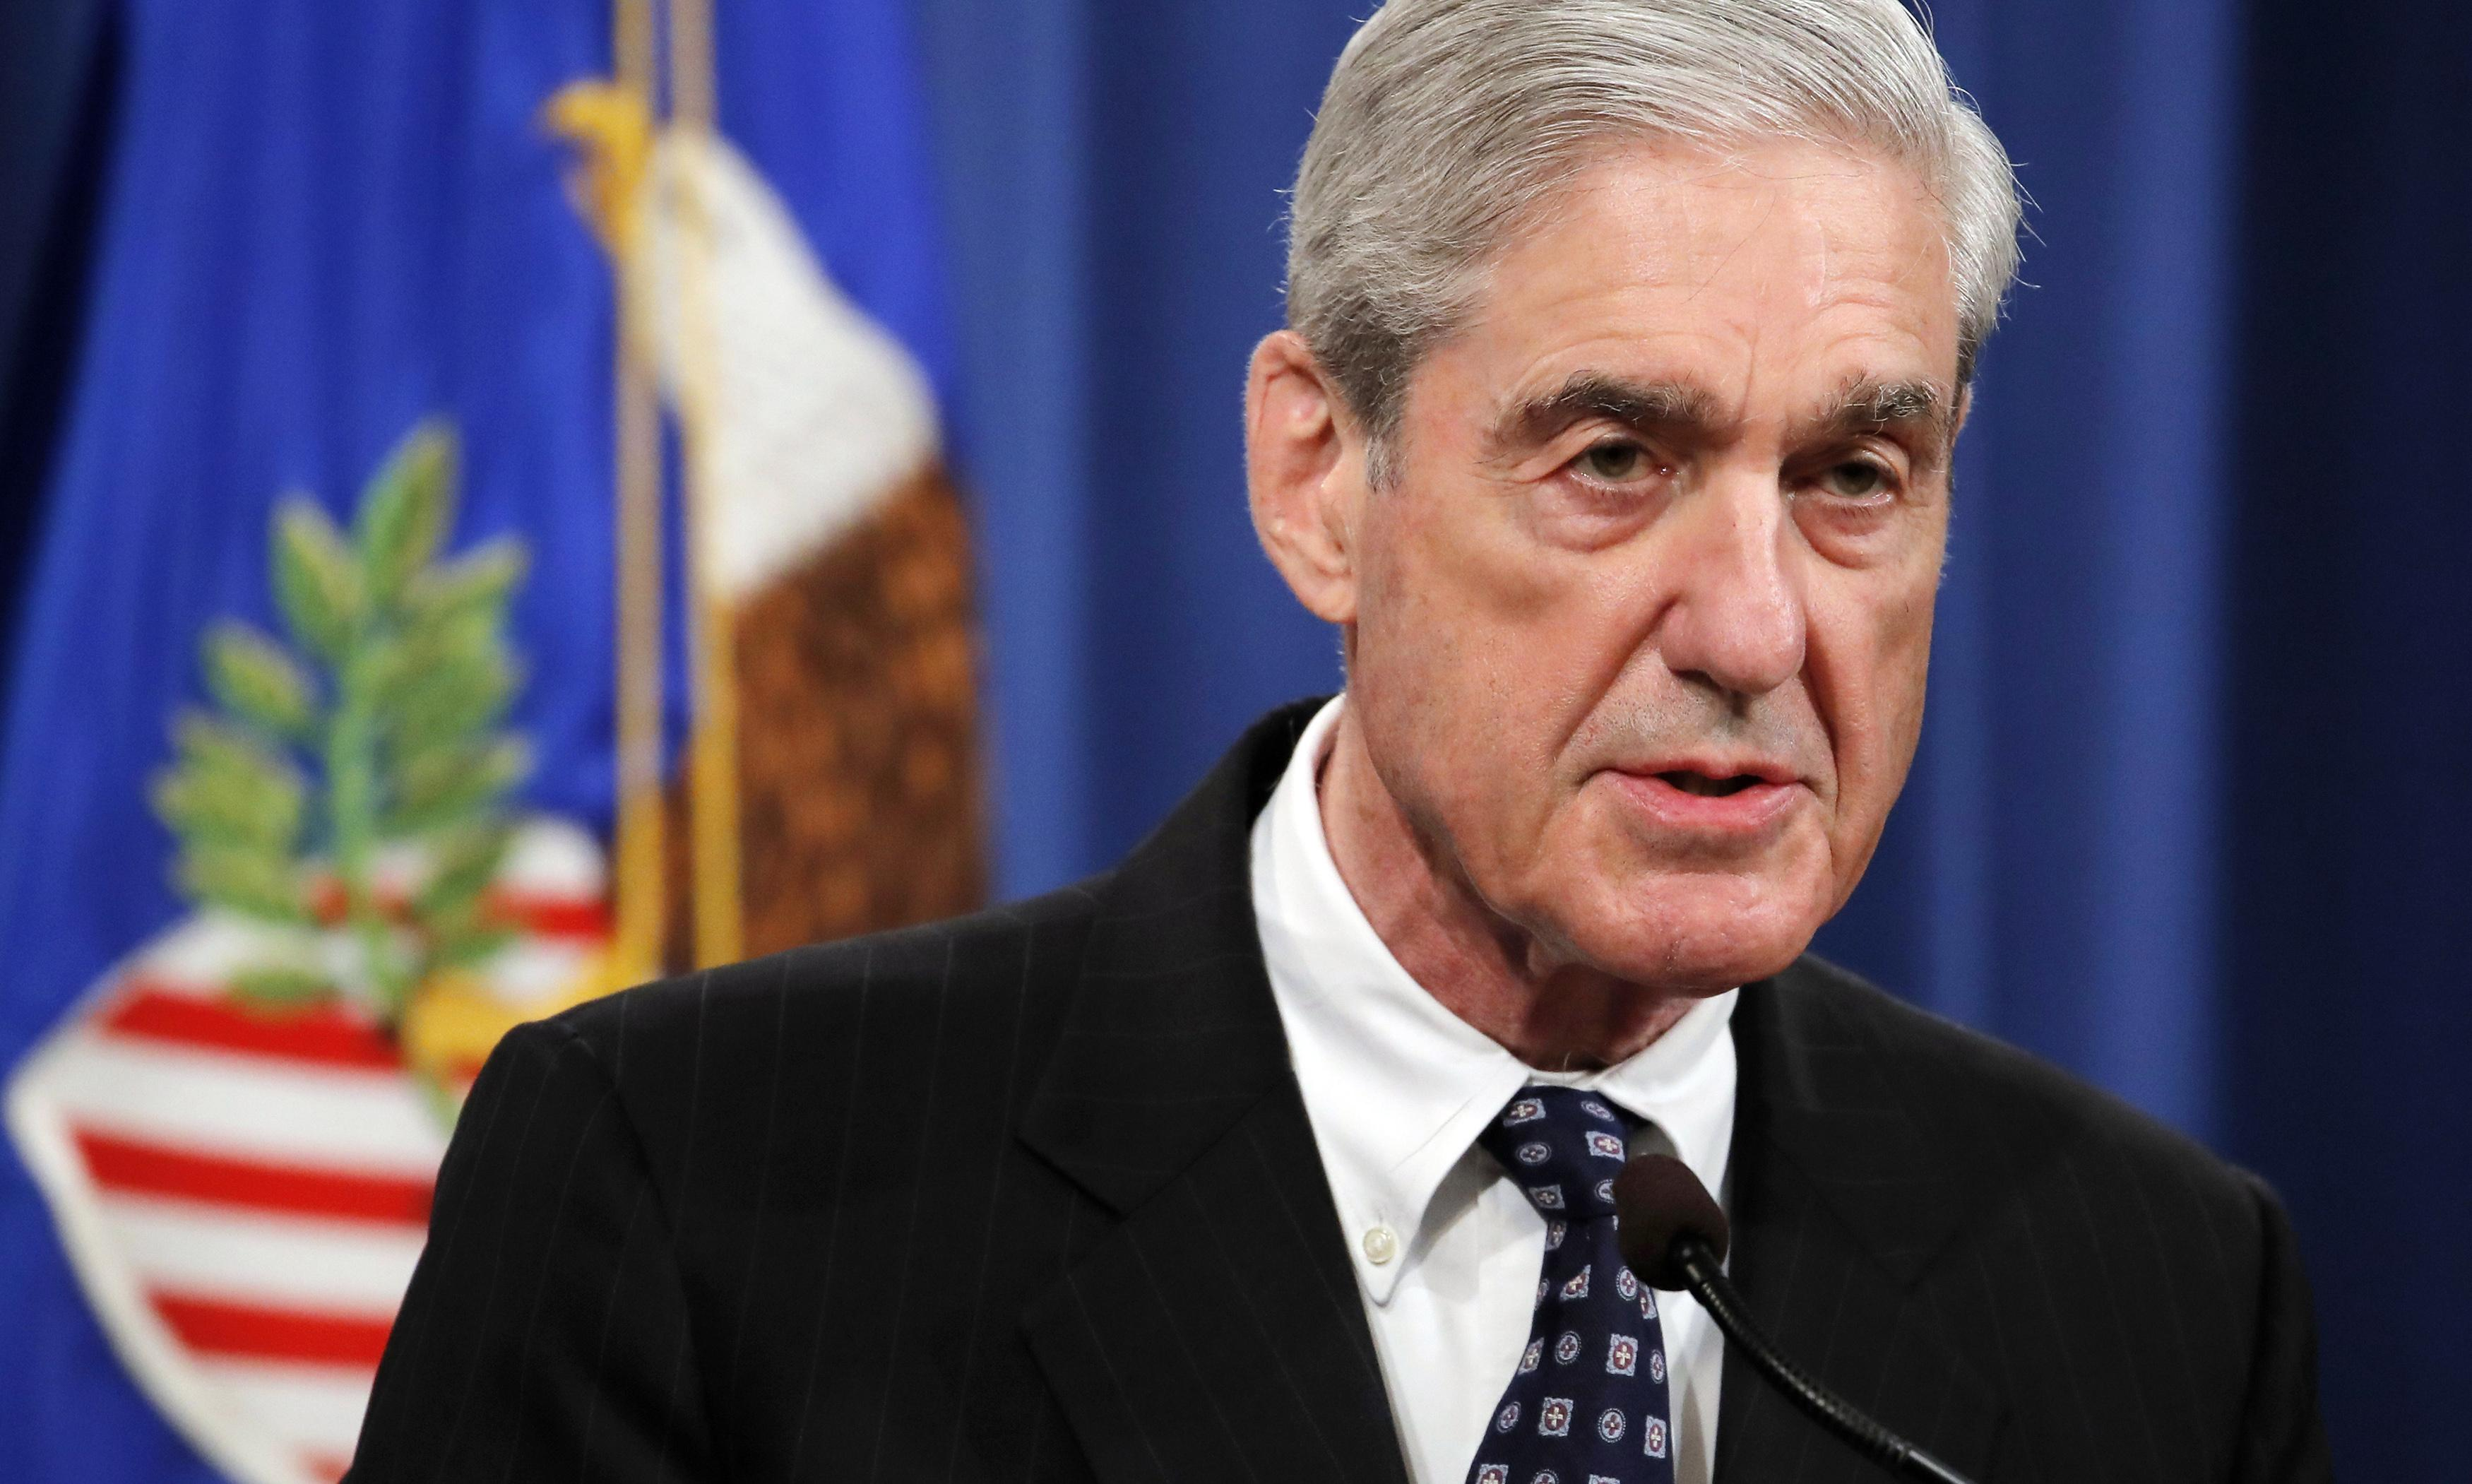 Robert Mueller: 'damning and explosive' testimony expected before Congress